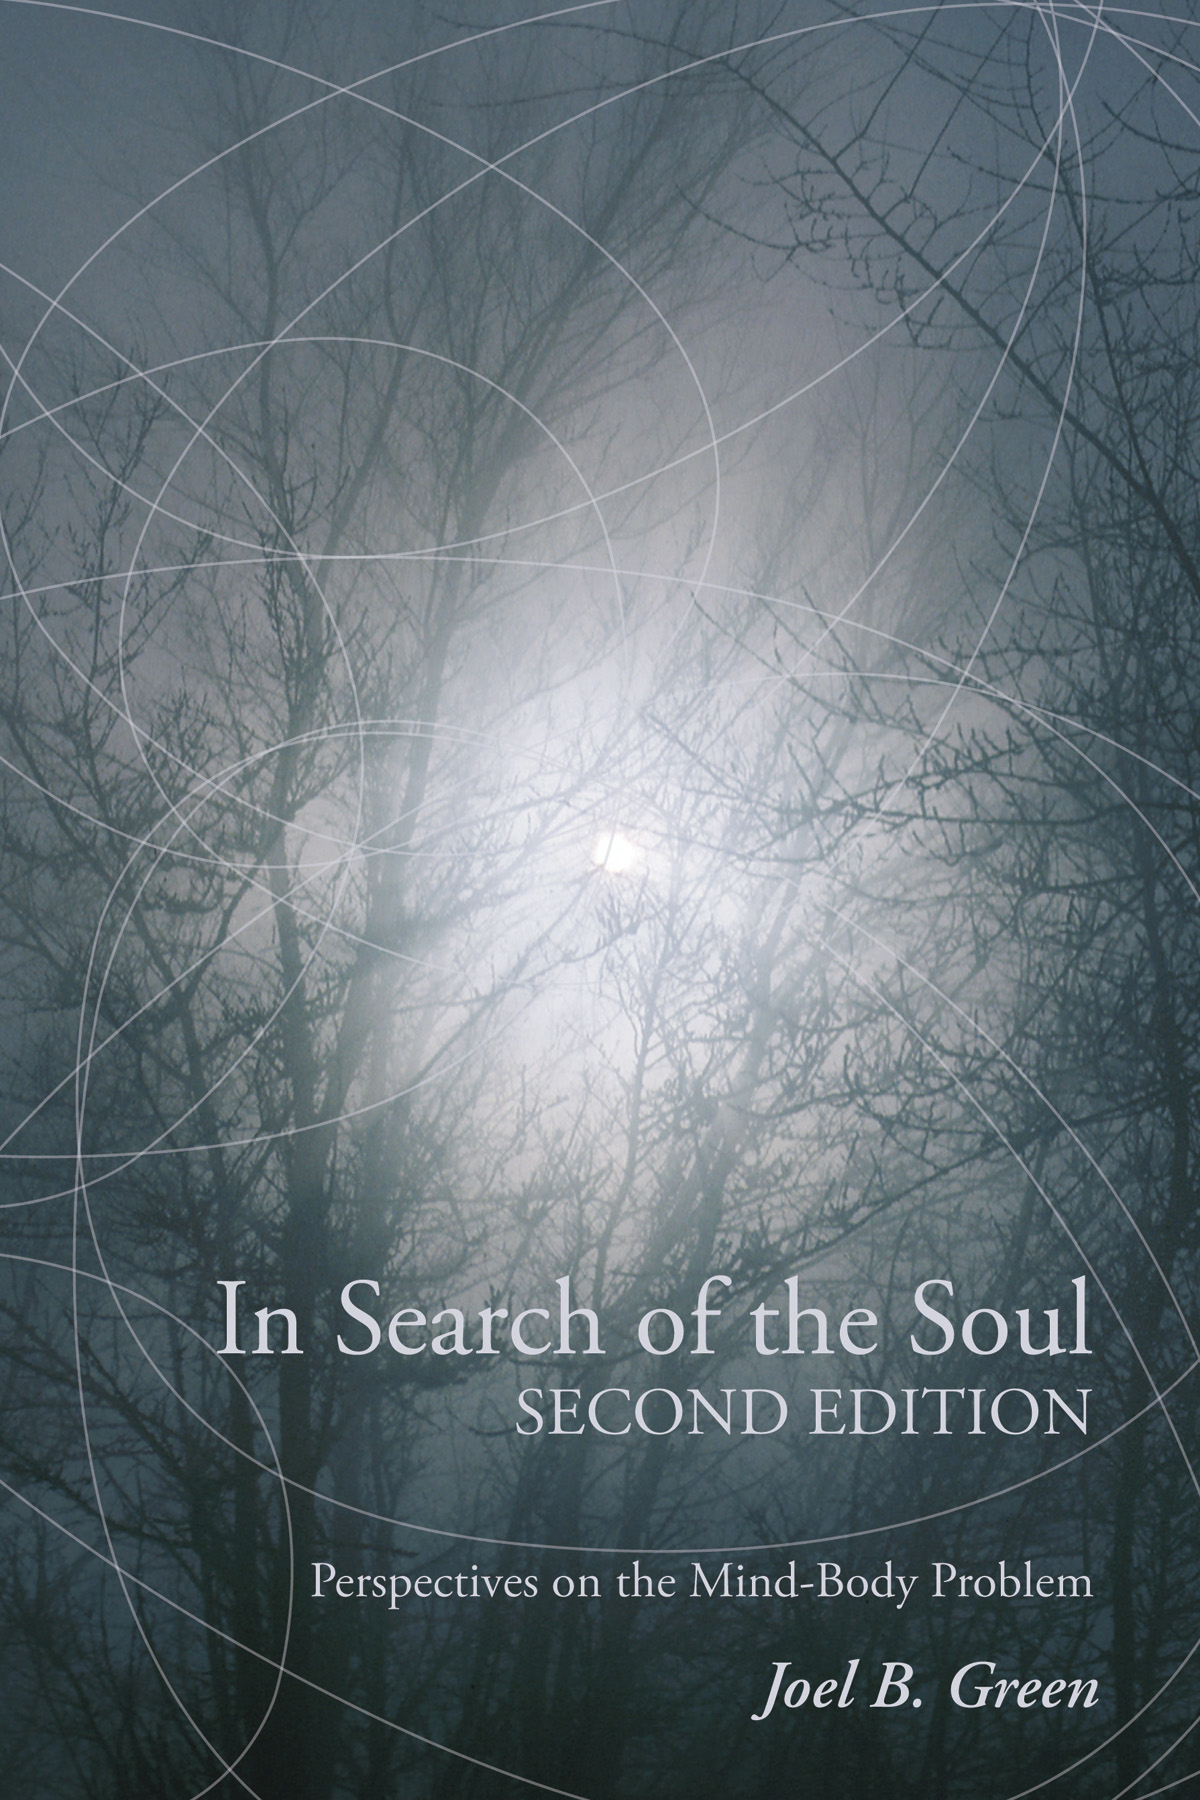 In Search of the Soul: Perspectives on the Mind-Body Problem